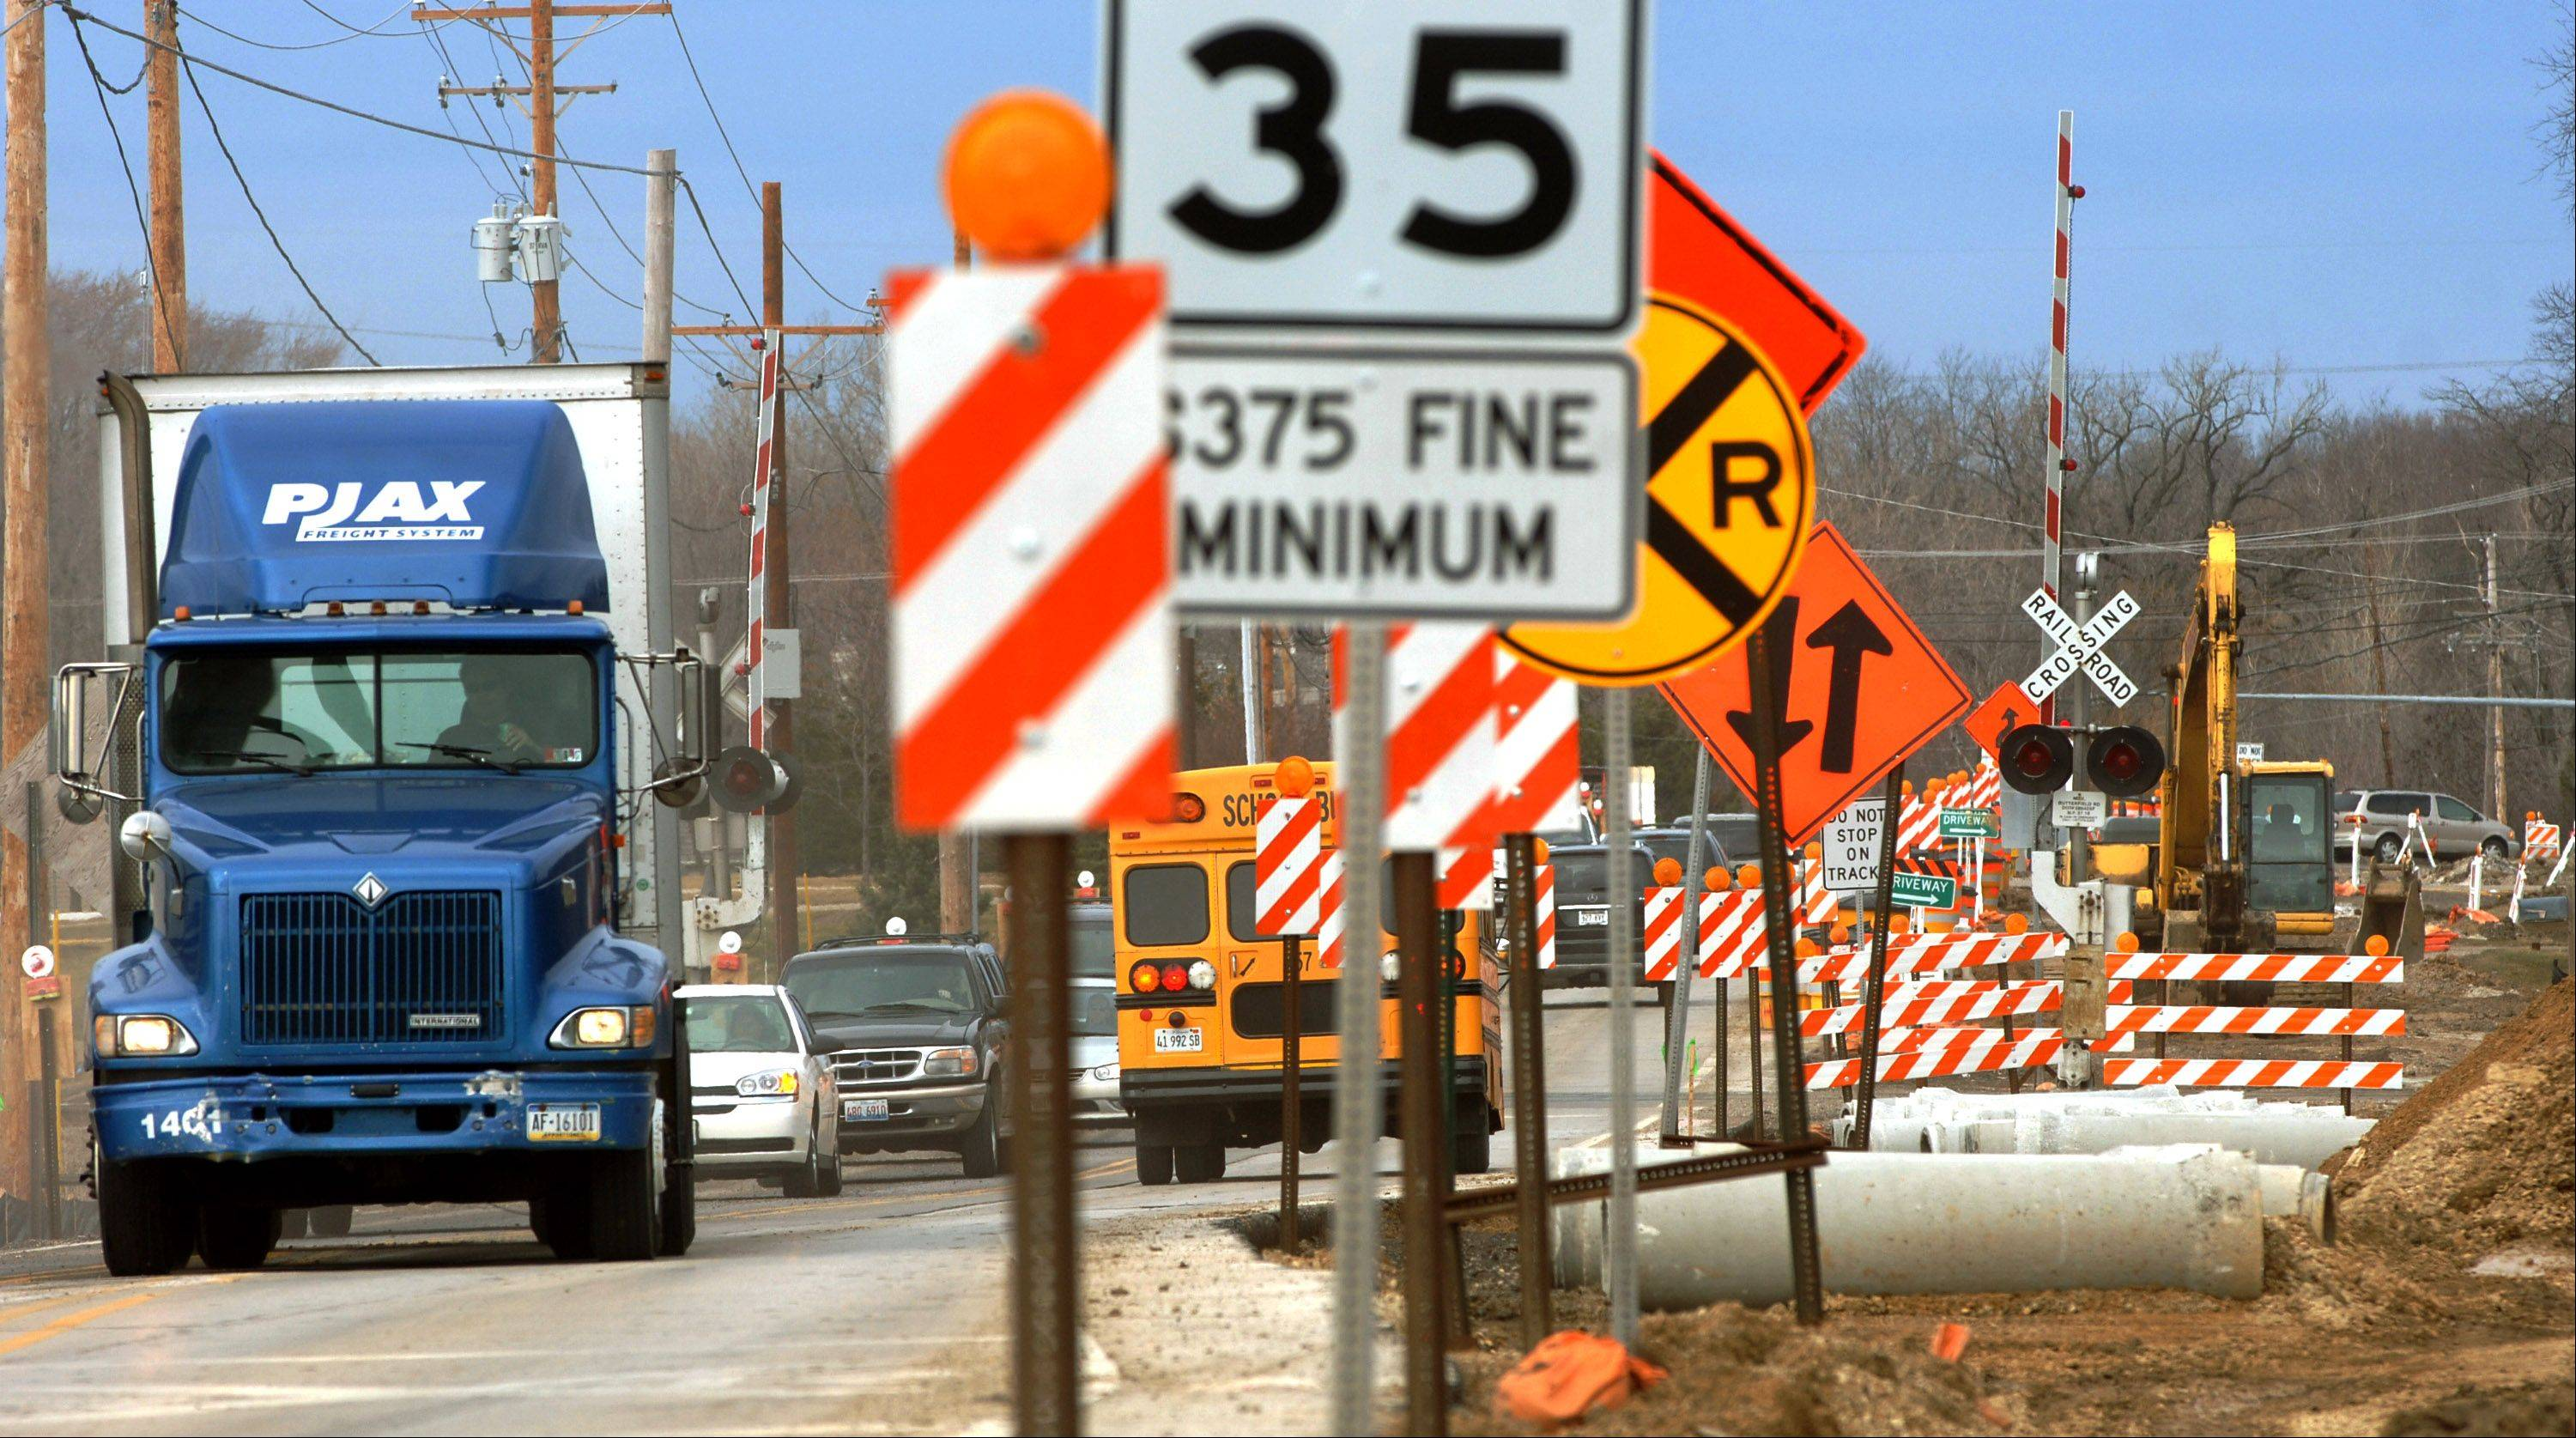 Preparations begin for Libertyville road work blitz